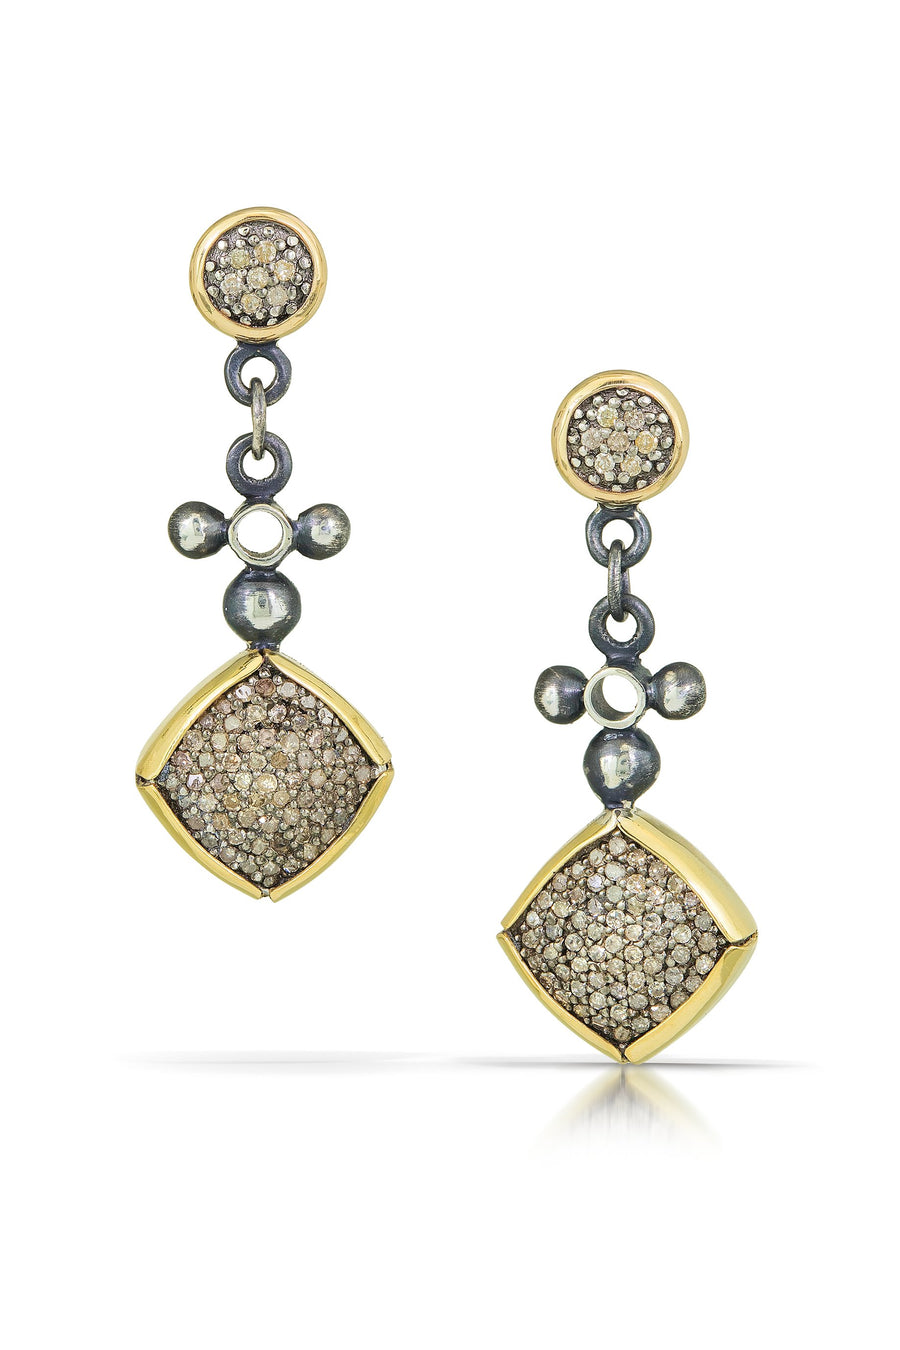 pave diamond earrings with 14k accent - 6mm stud with square